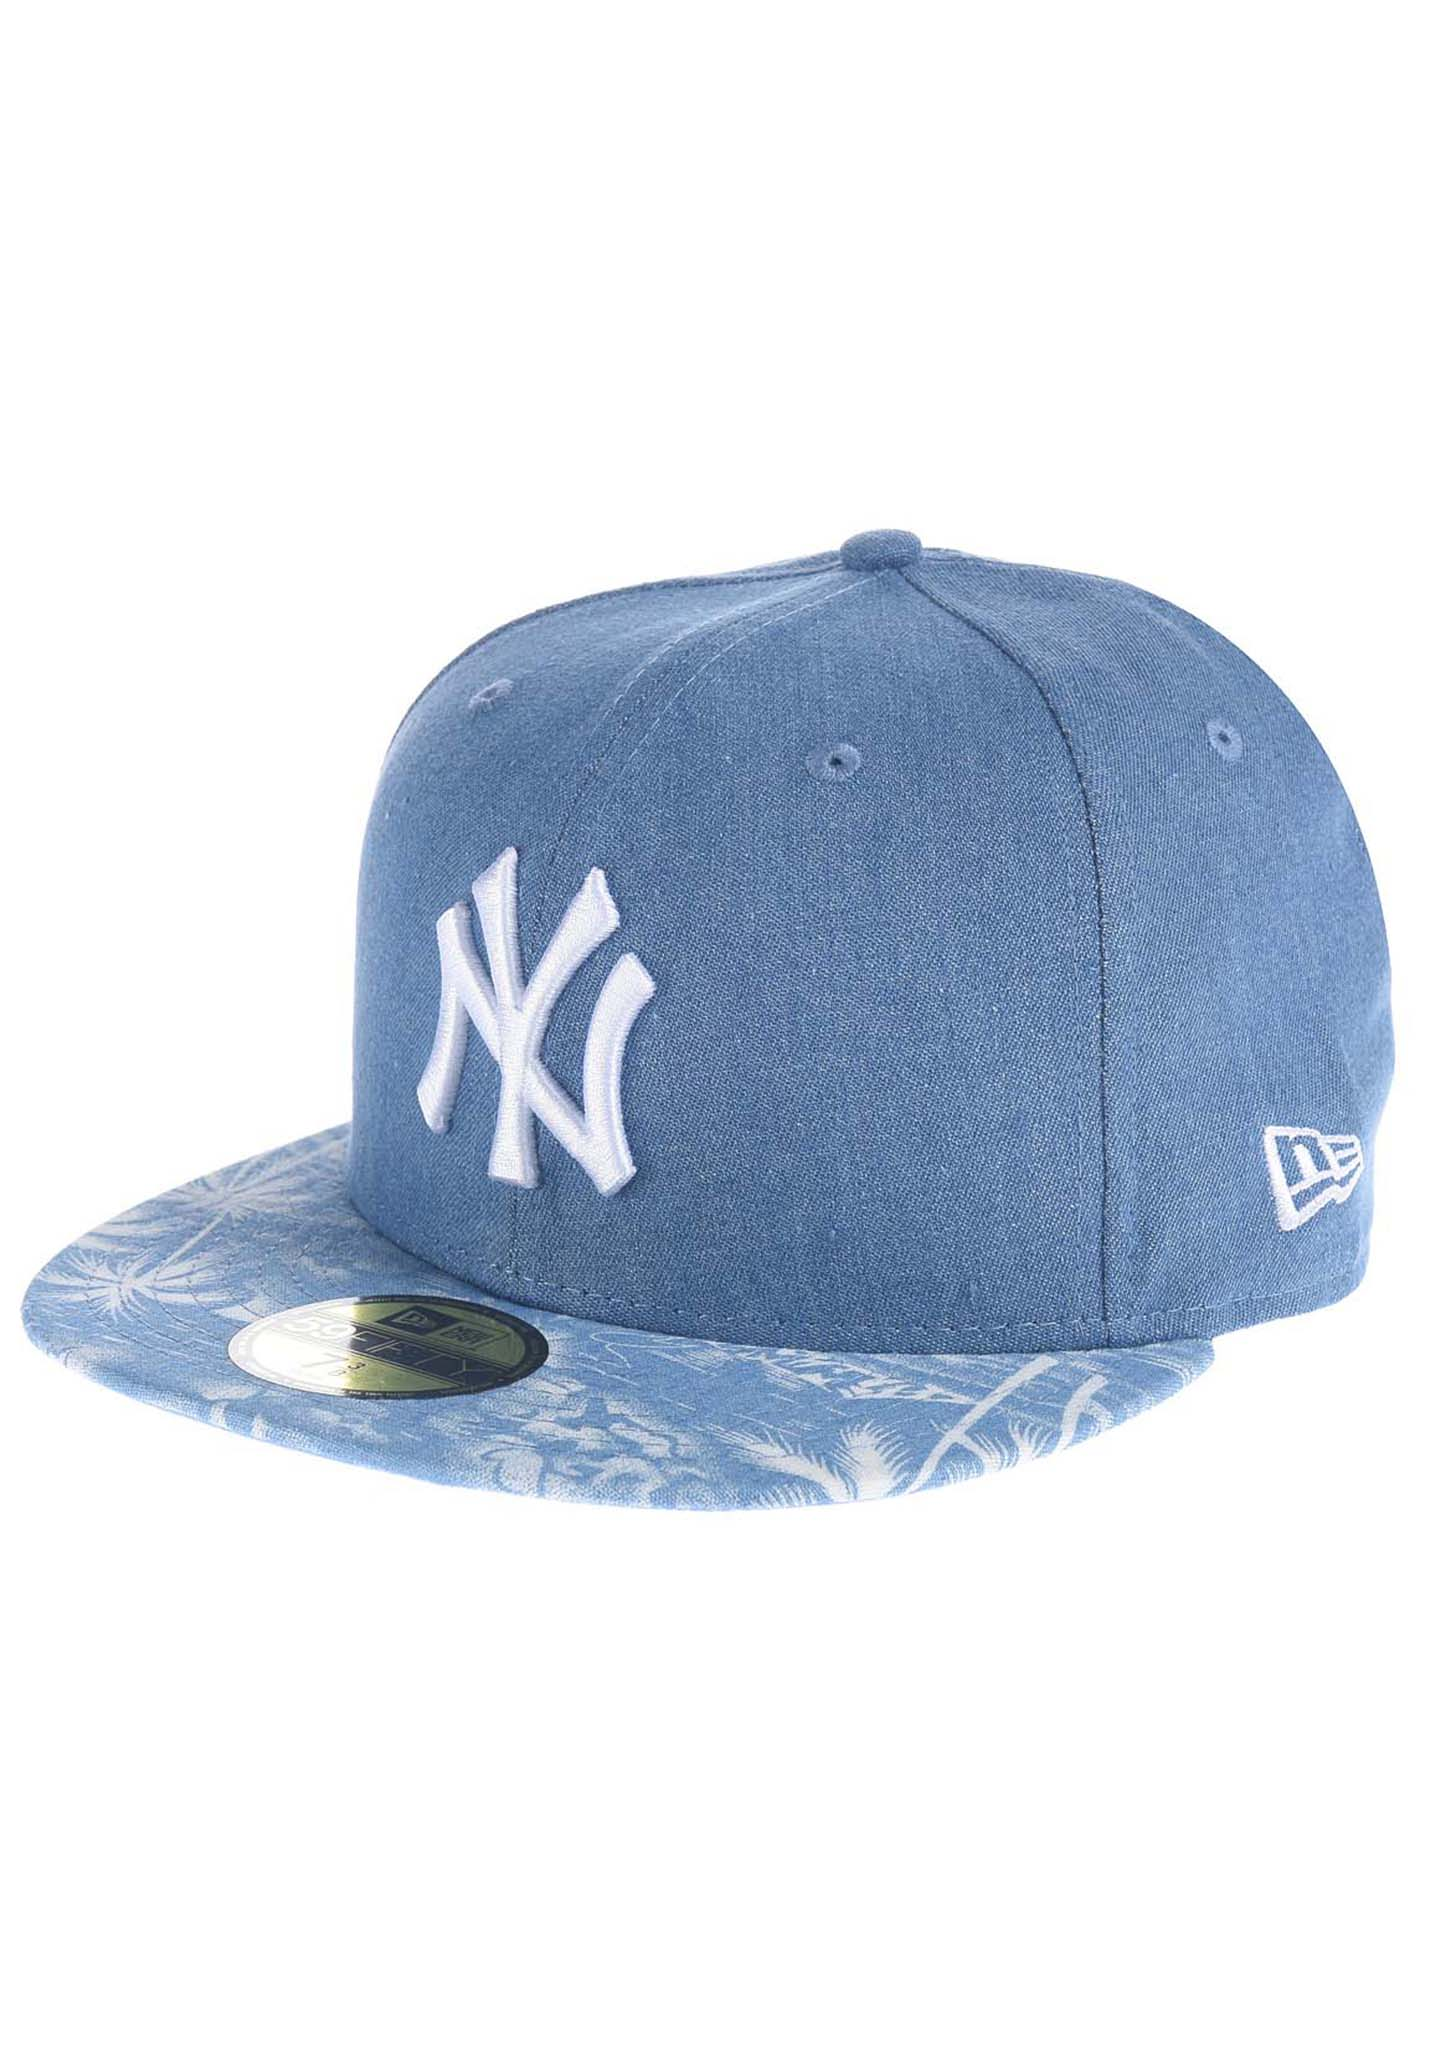 d62c206529b NEW Era Den Palm Fitted NY Yankees - Fitted Cap - Blue - Planet Sports